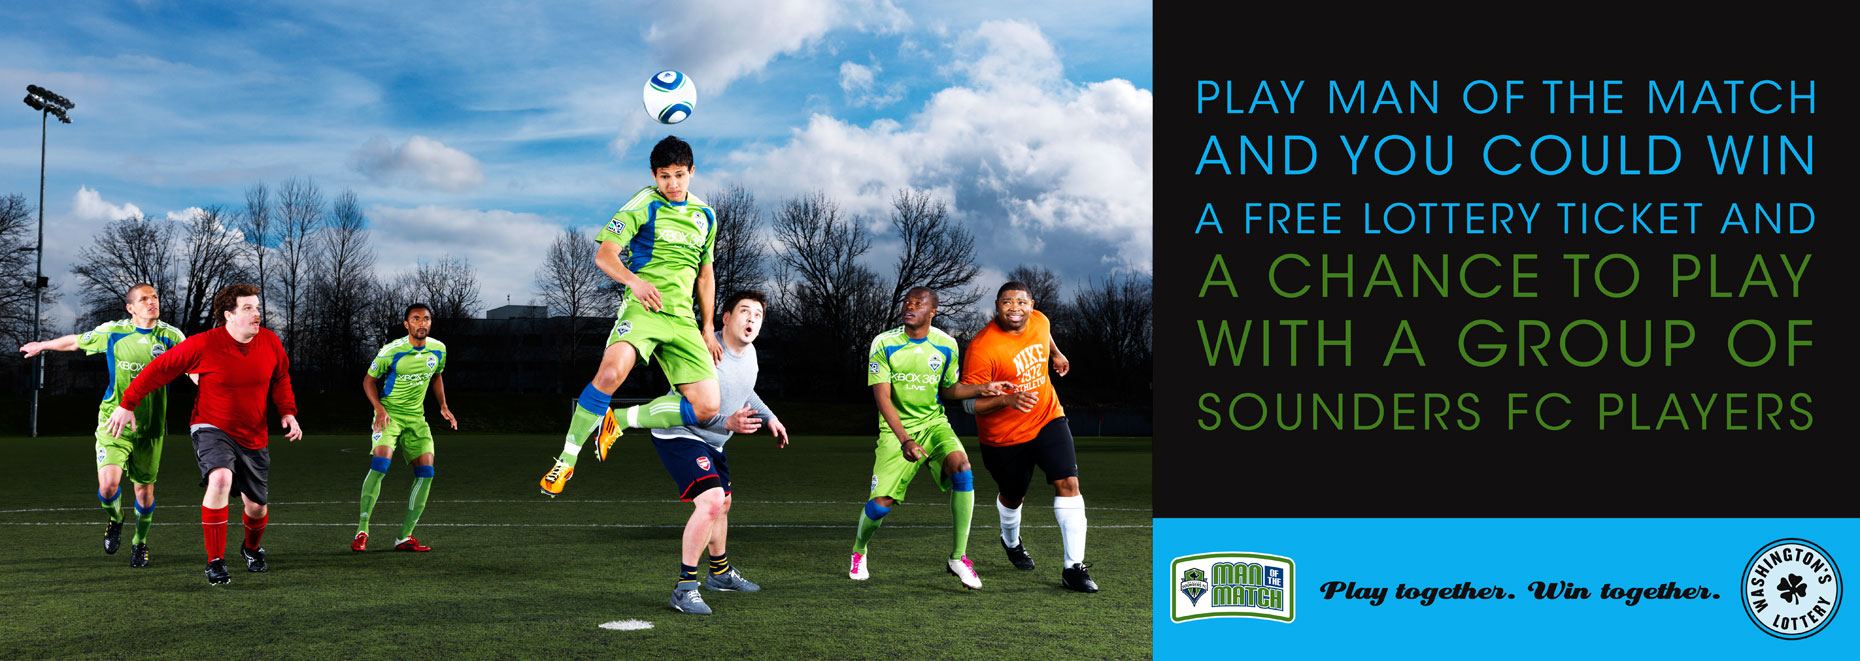 sounders_header_ad